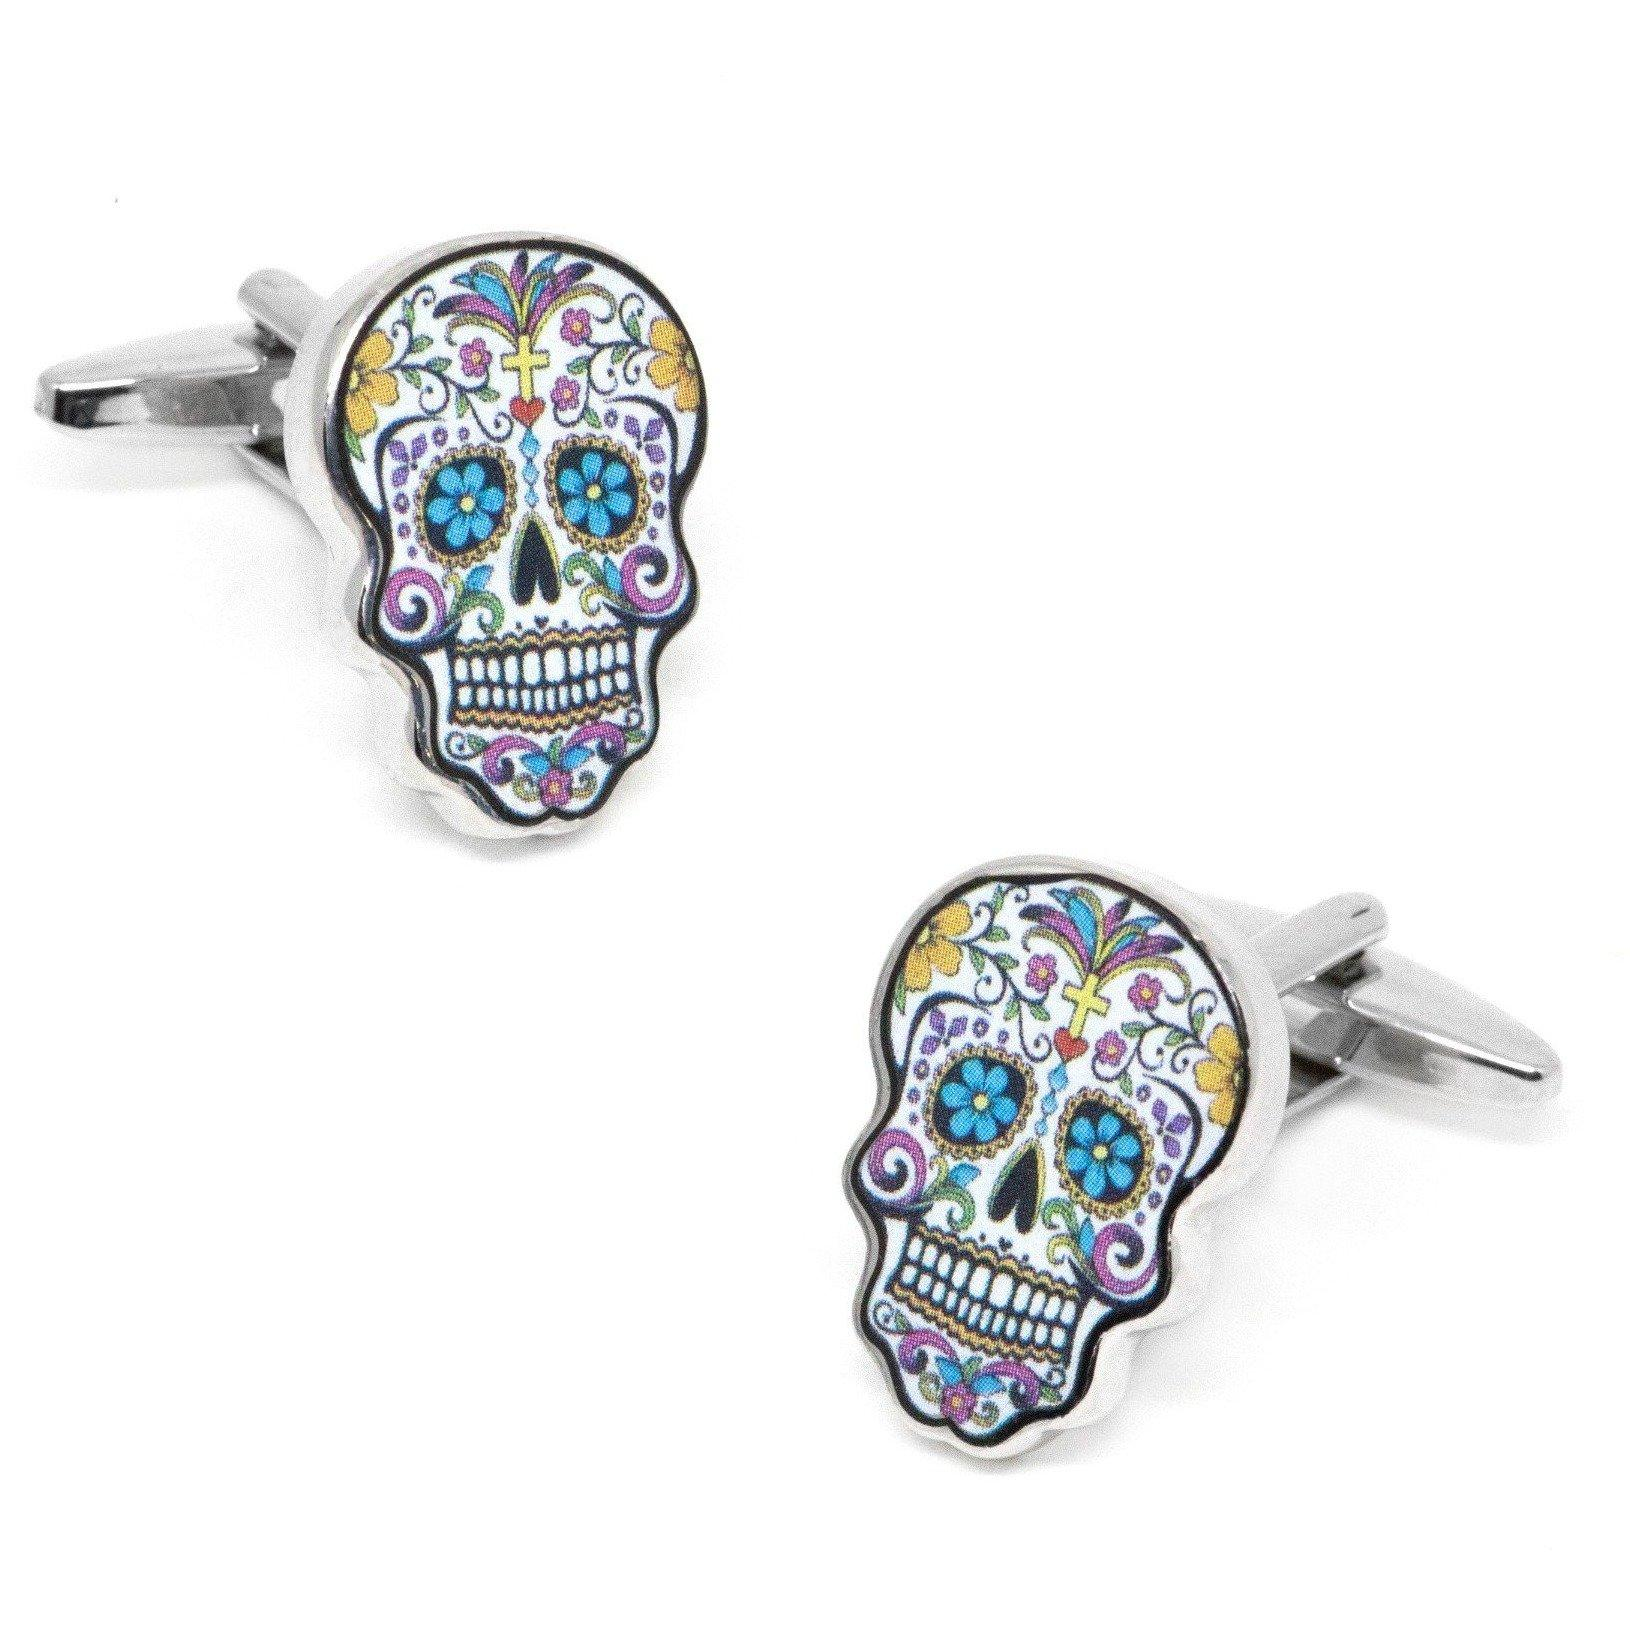 Flower Skull Calavera Cufflinks, Novelty Cufflinks, Cuffed.com.au, CL8339, $29.00